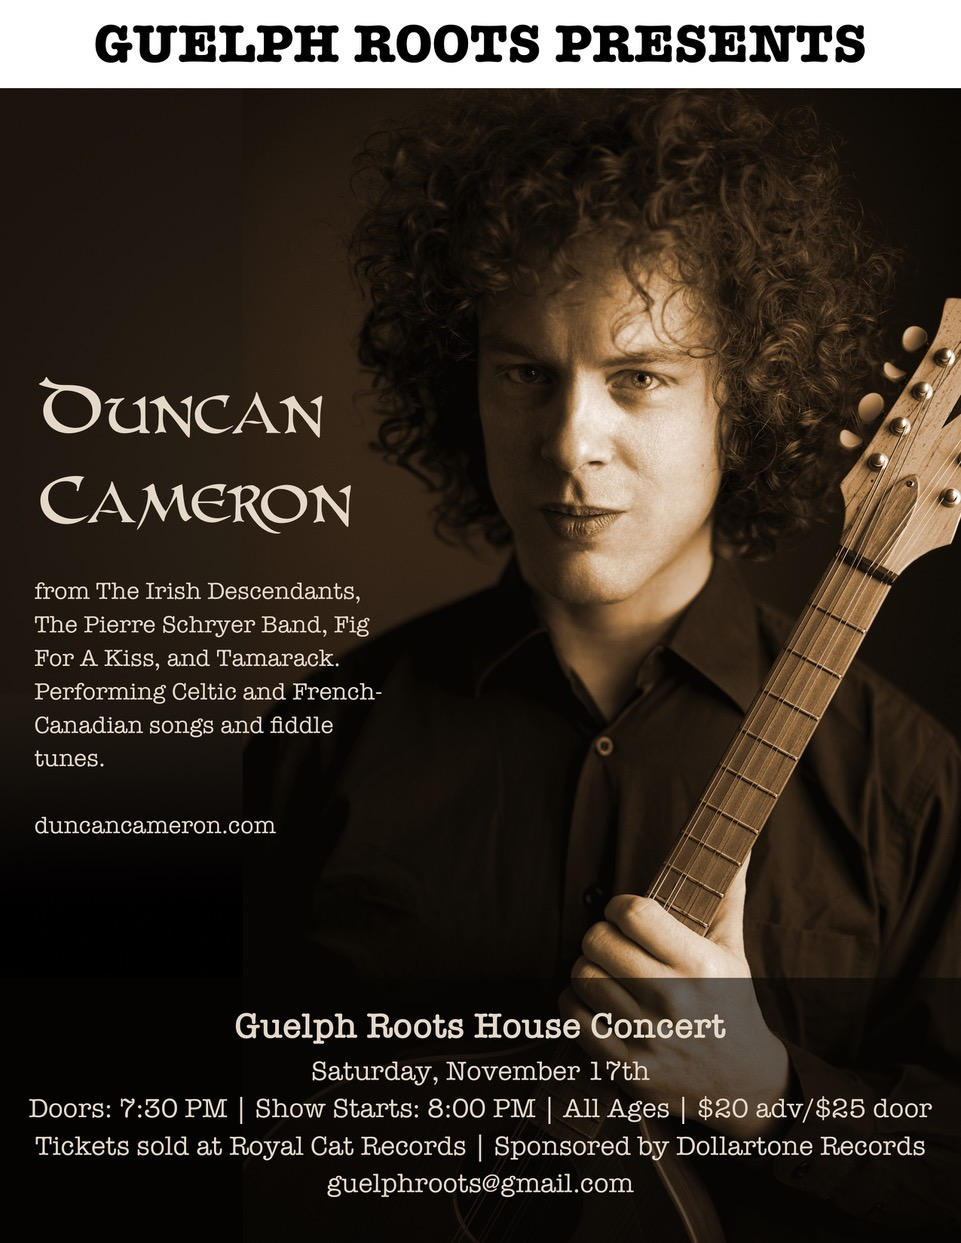 Duncan Cameron and special guest, a Guelph Roots presents,